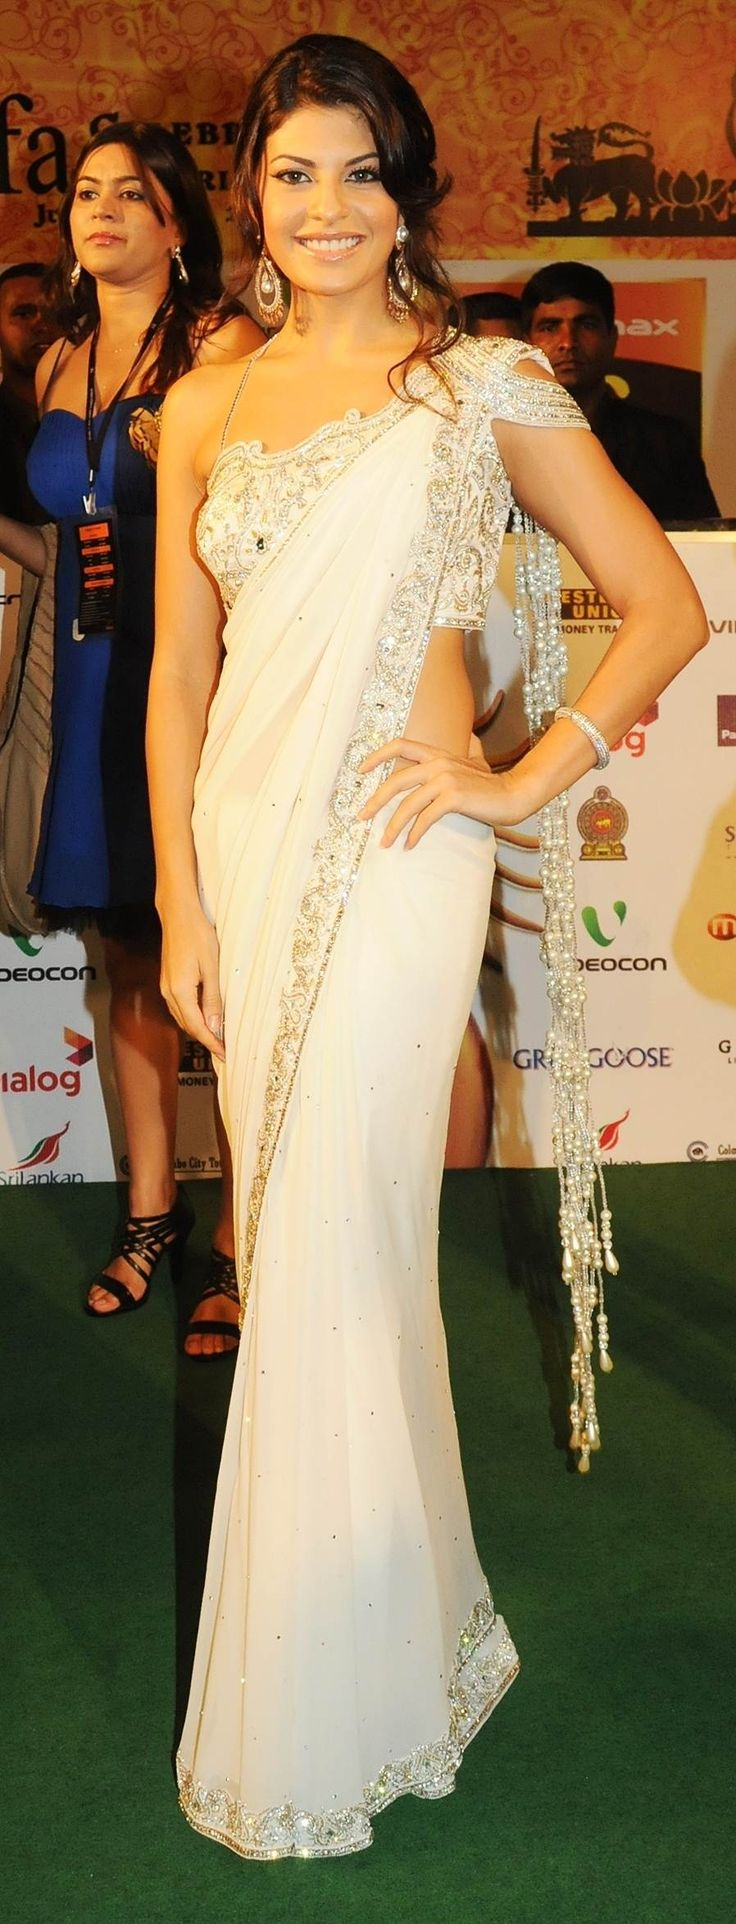 Former Miss Sri Lanka, Jacqueline Fernandez, in a Goorgeous White Sari – Simple yet elegant. #southasianfashion #sari #southasiancouture